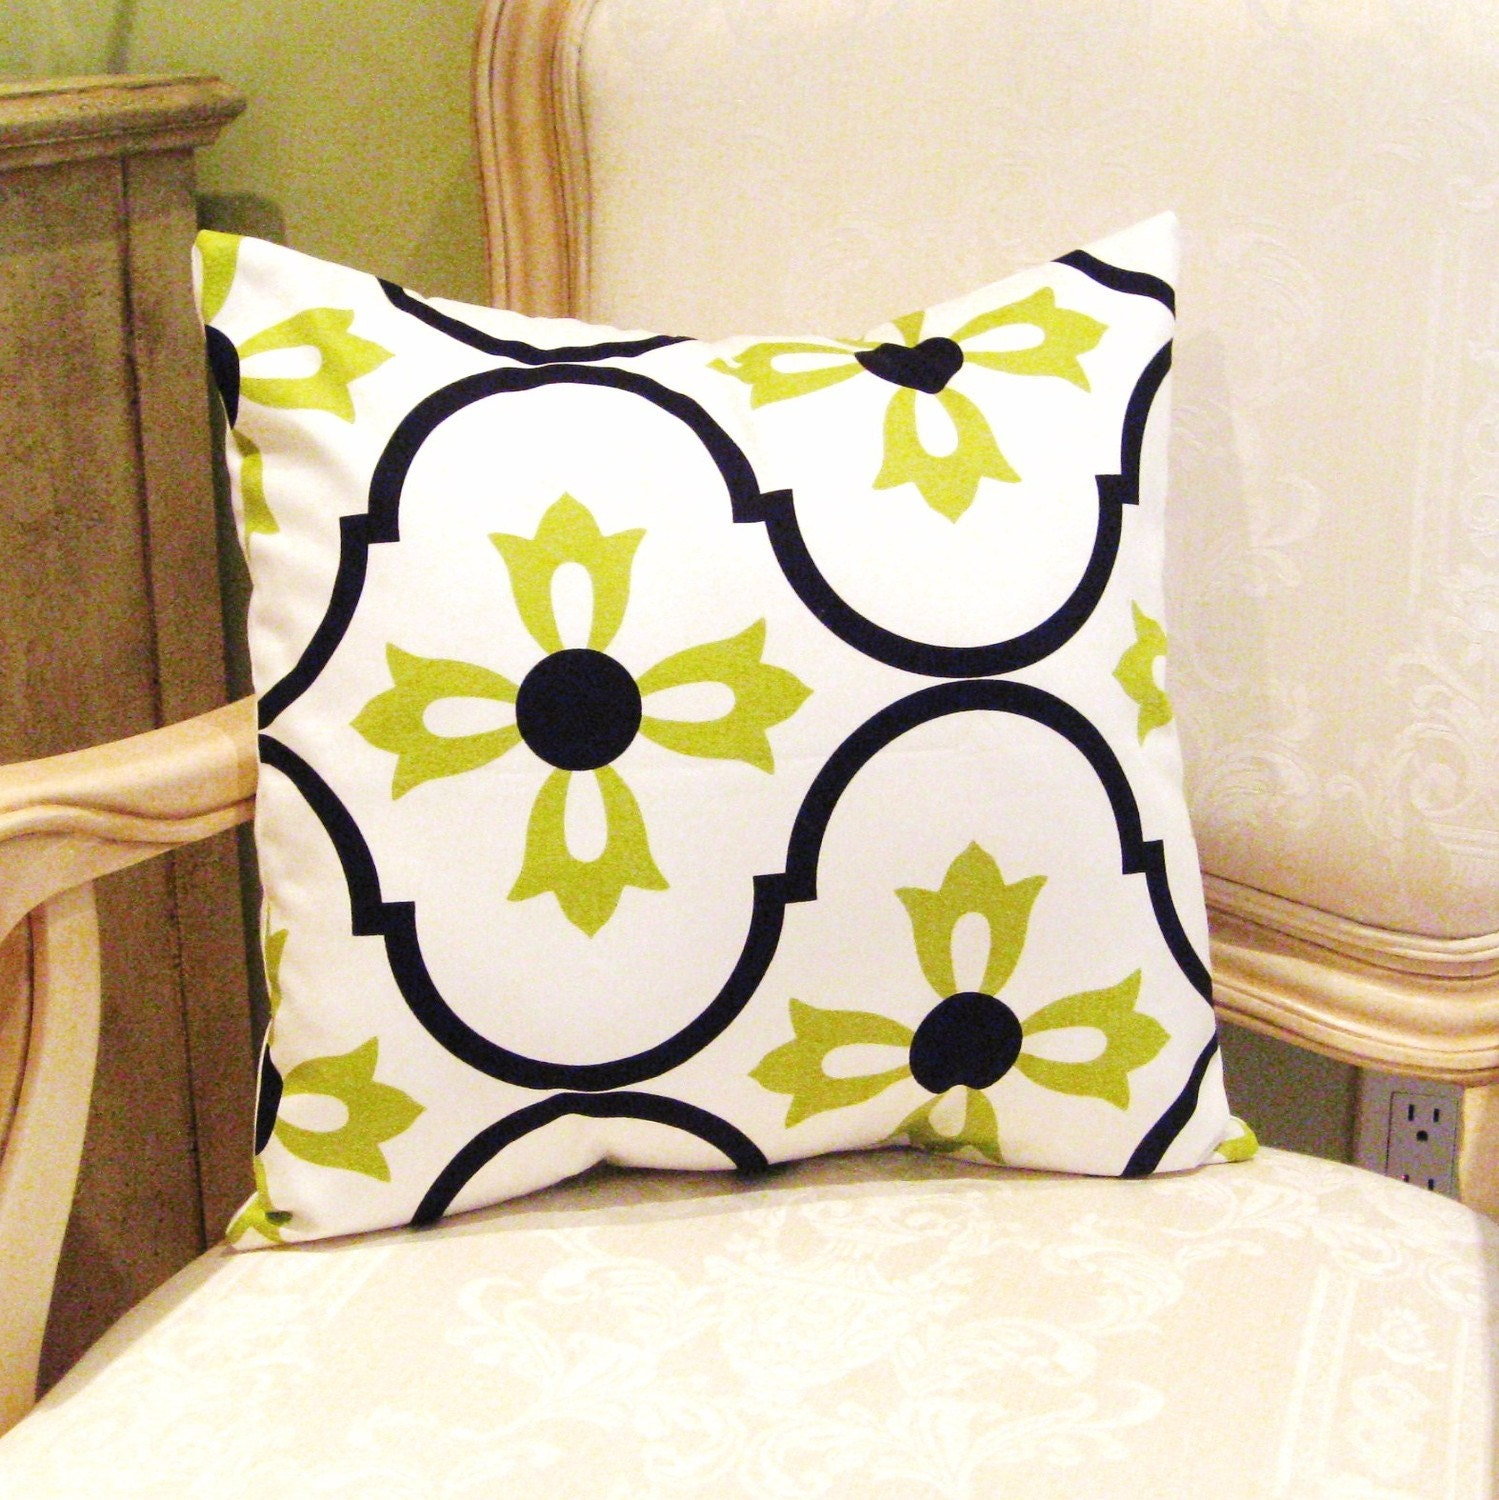 16x16 inch Handmade Pillow Cushion Cover Case in Designer Vicki Payne, Logan, Blossom in Lime by LMcreation on Etsy